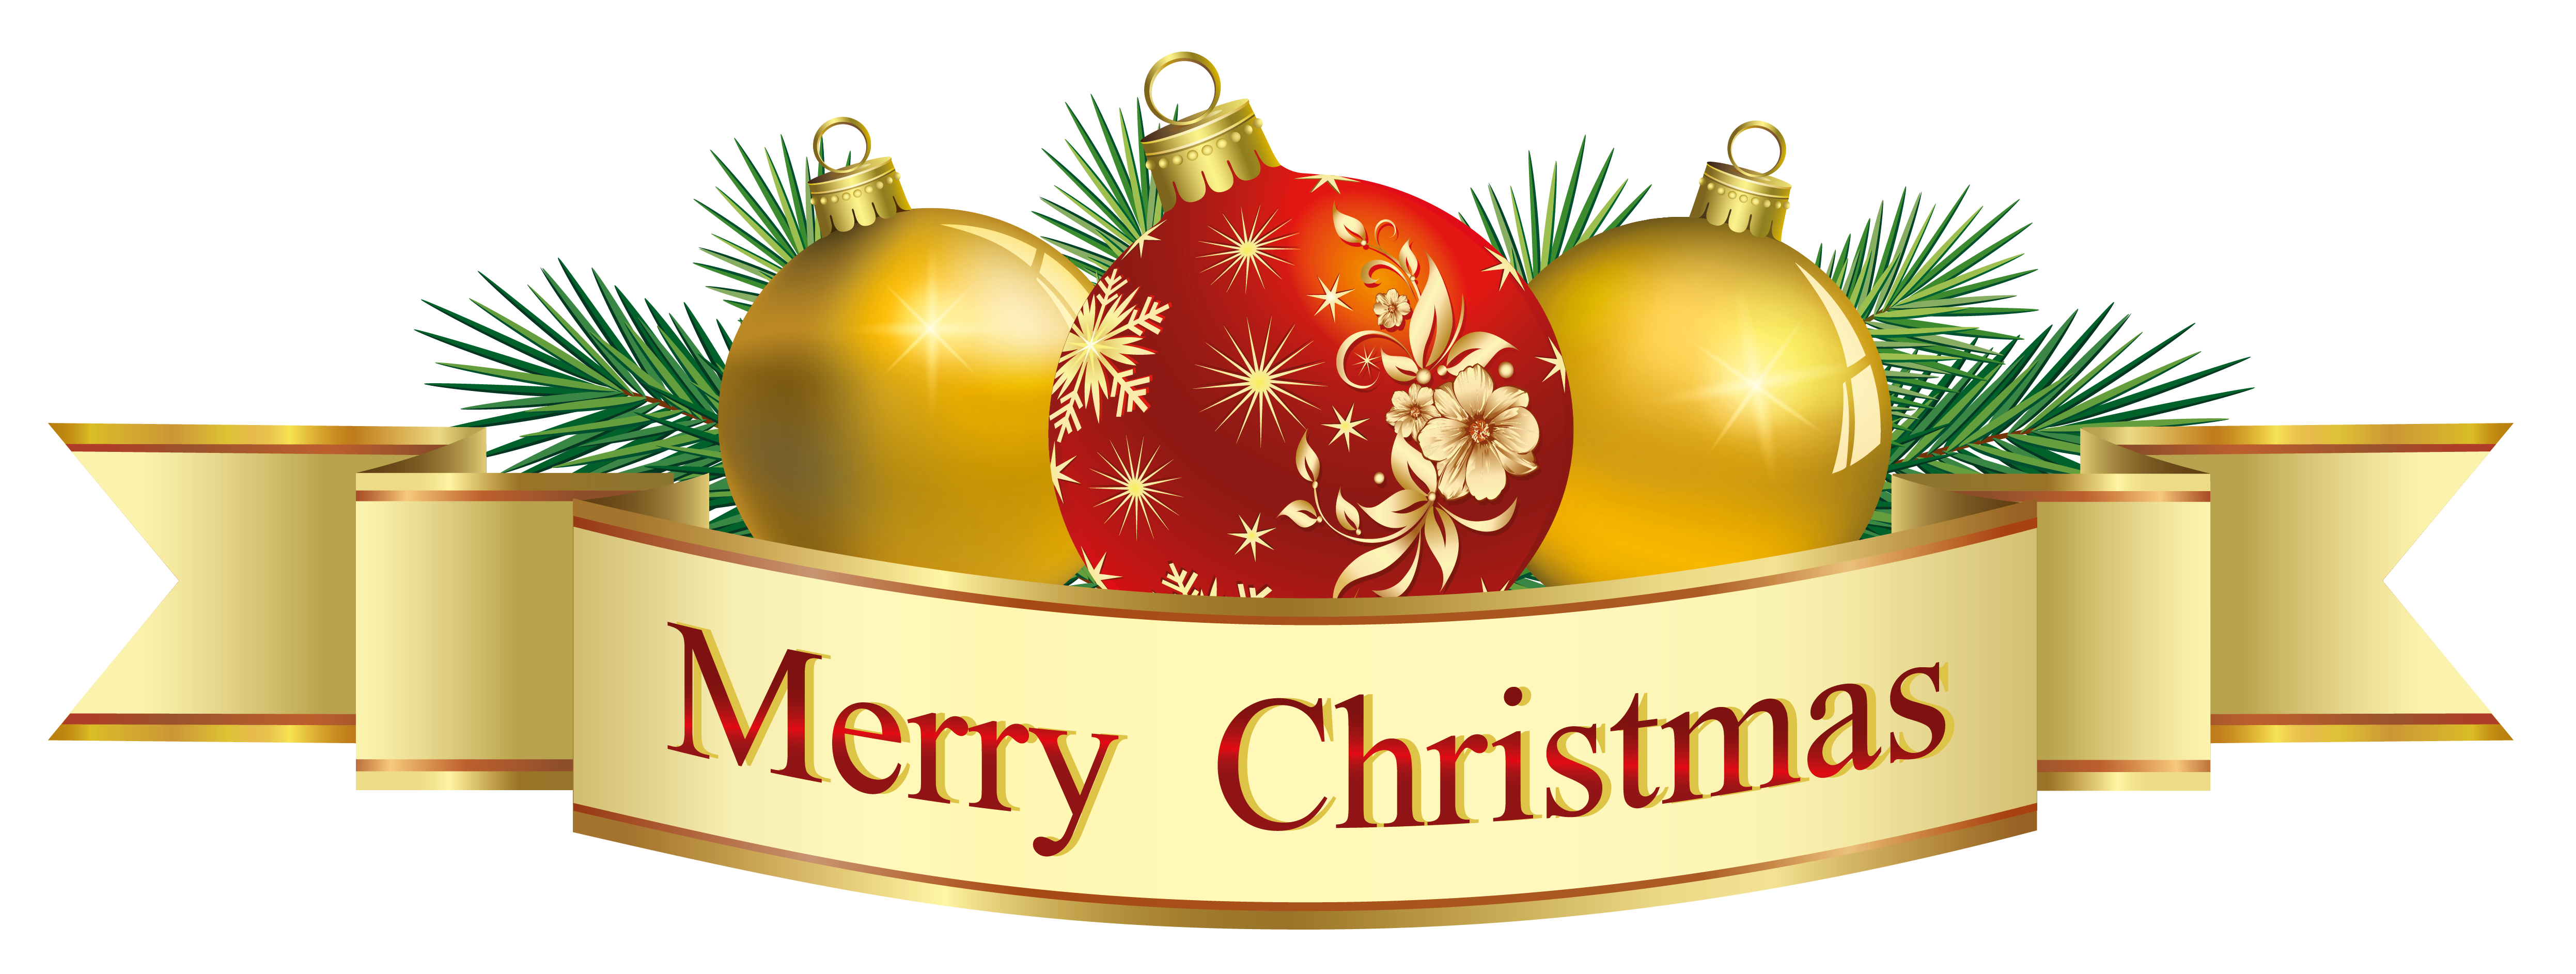 Merry Christmas Clip Art Images.